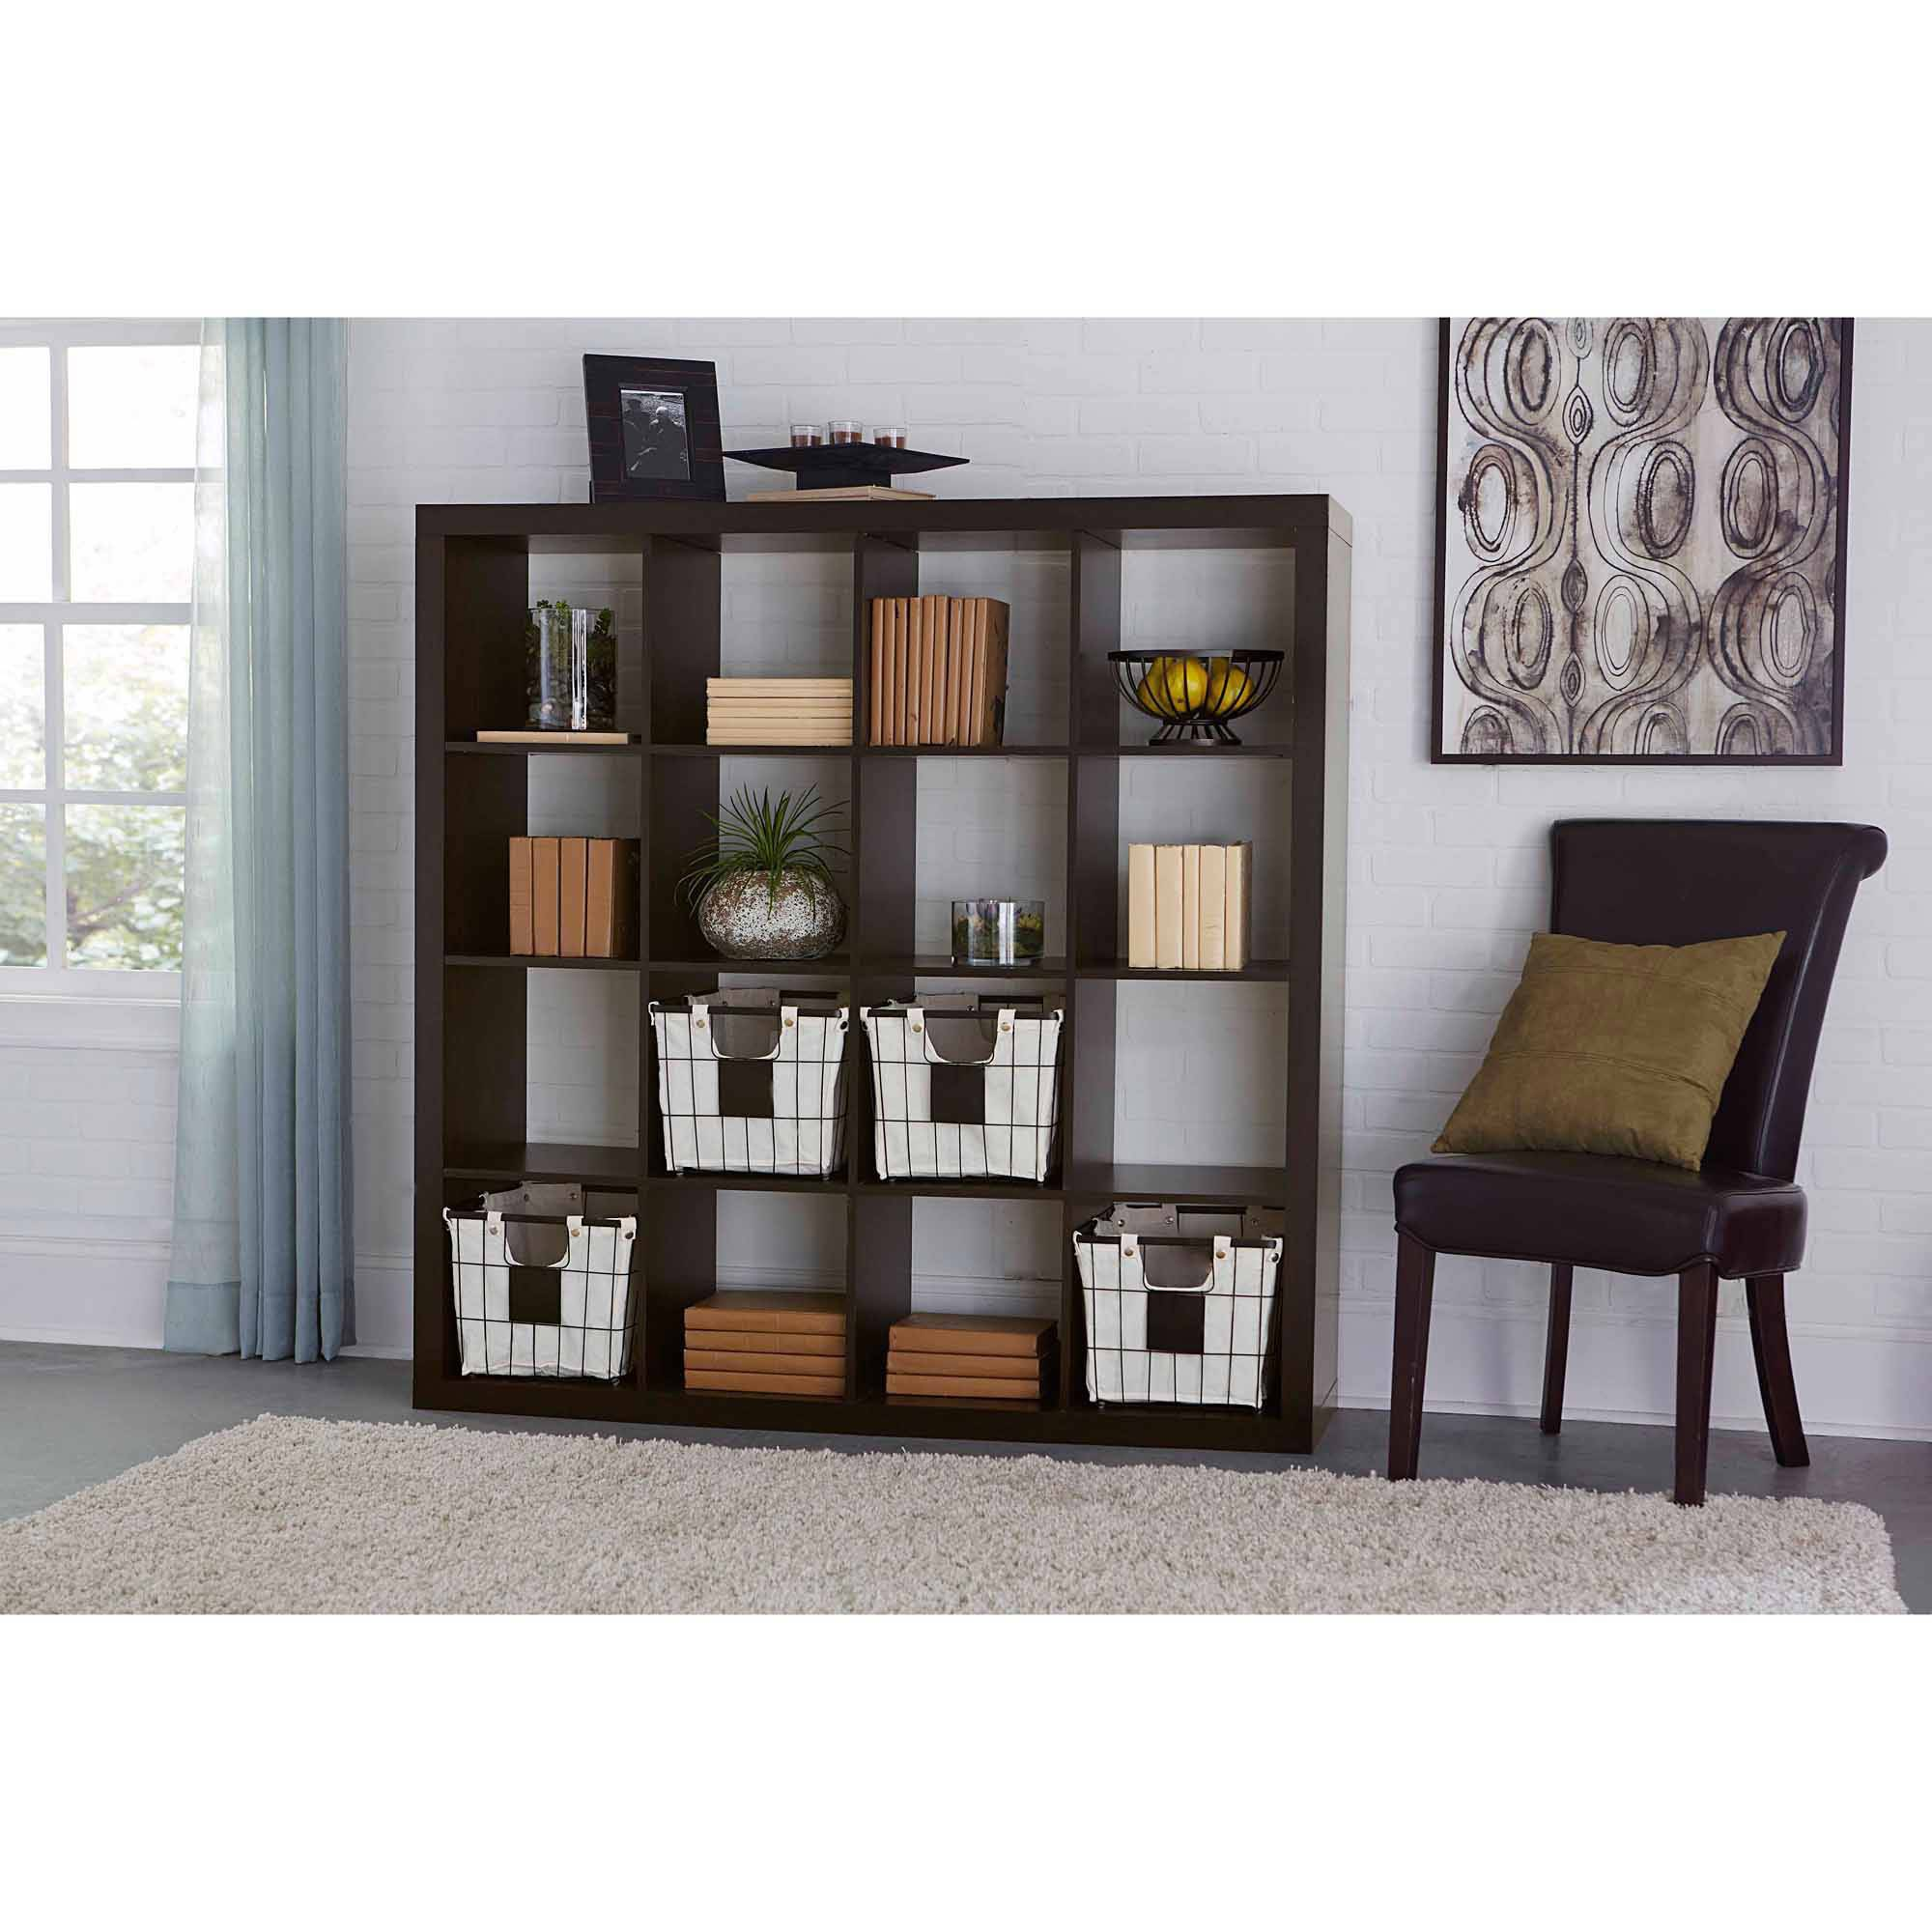 Better Homes And Gardens 16 Cube Storage Organizer, Multiple Colors    Walmart.com